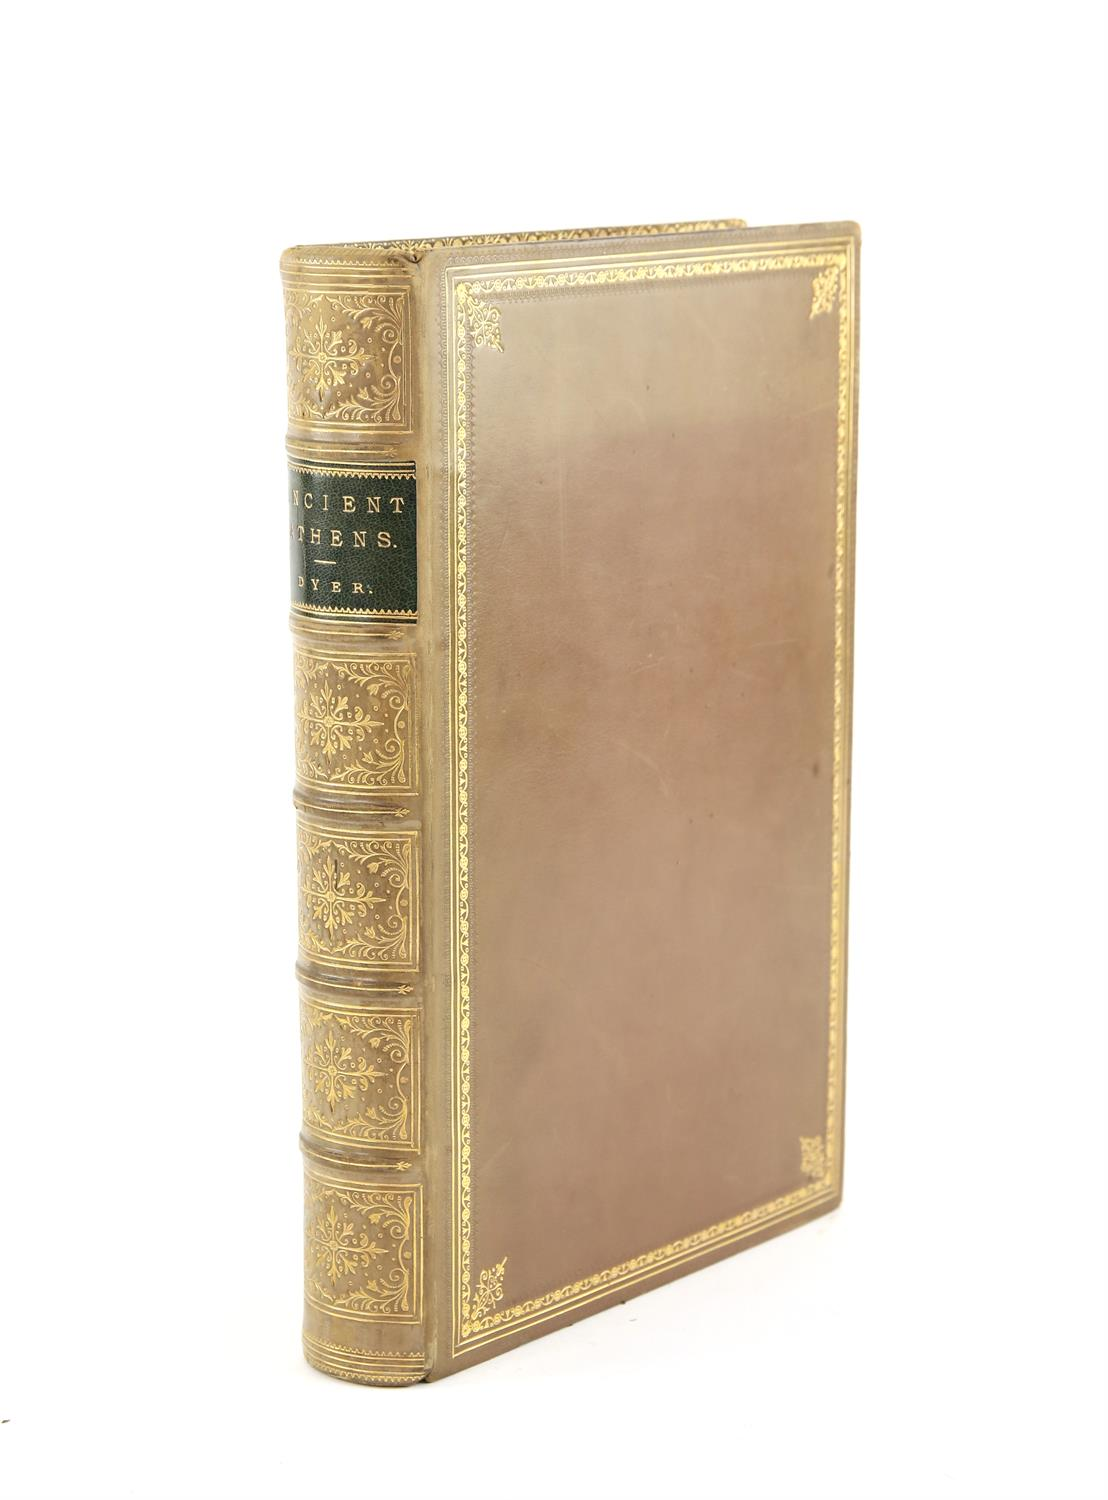 Thomas Henry Dyer, Ancient Athens; Its history, typography and remains, First edition published